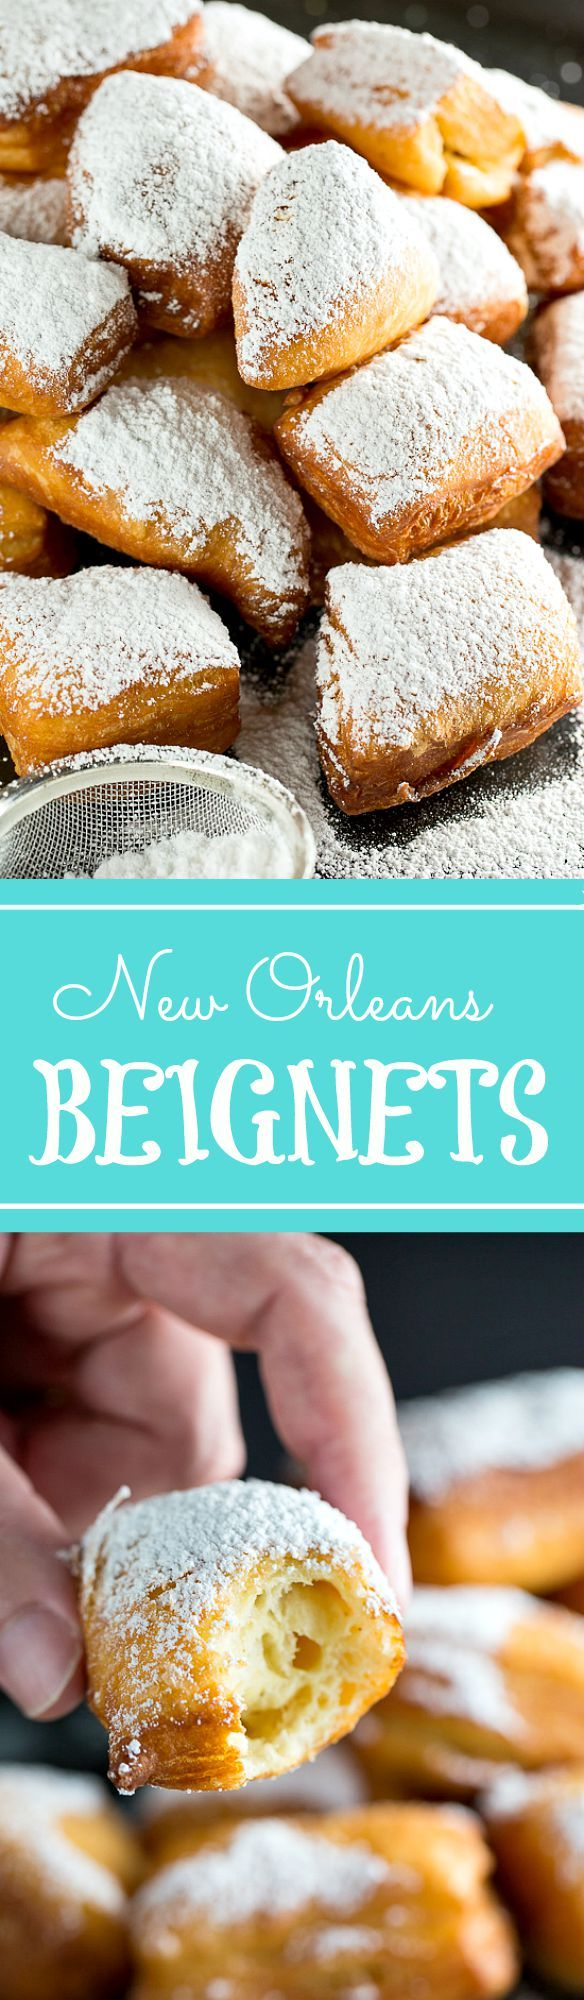 Homemade Beignets Spicy Southern Kitchen Recipe Recipes Food Yummy Food